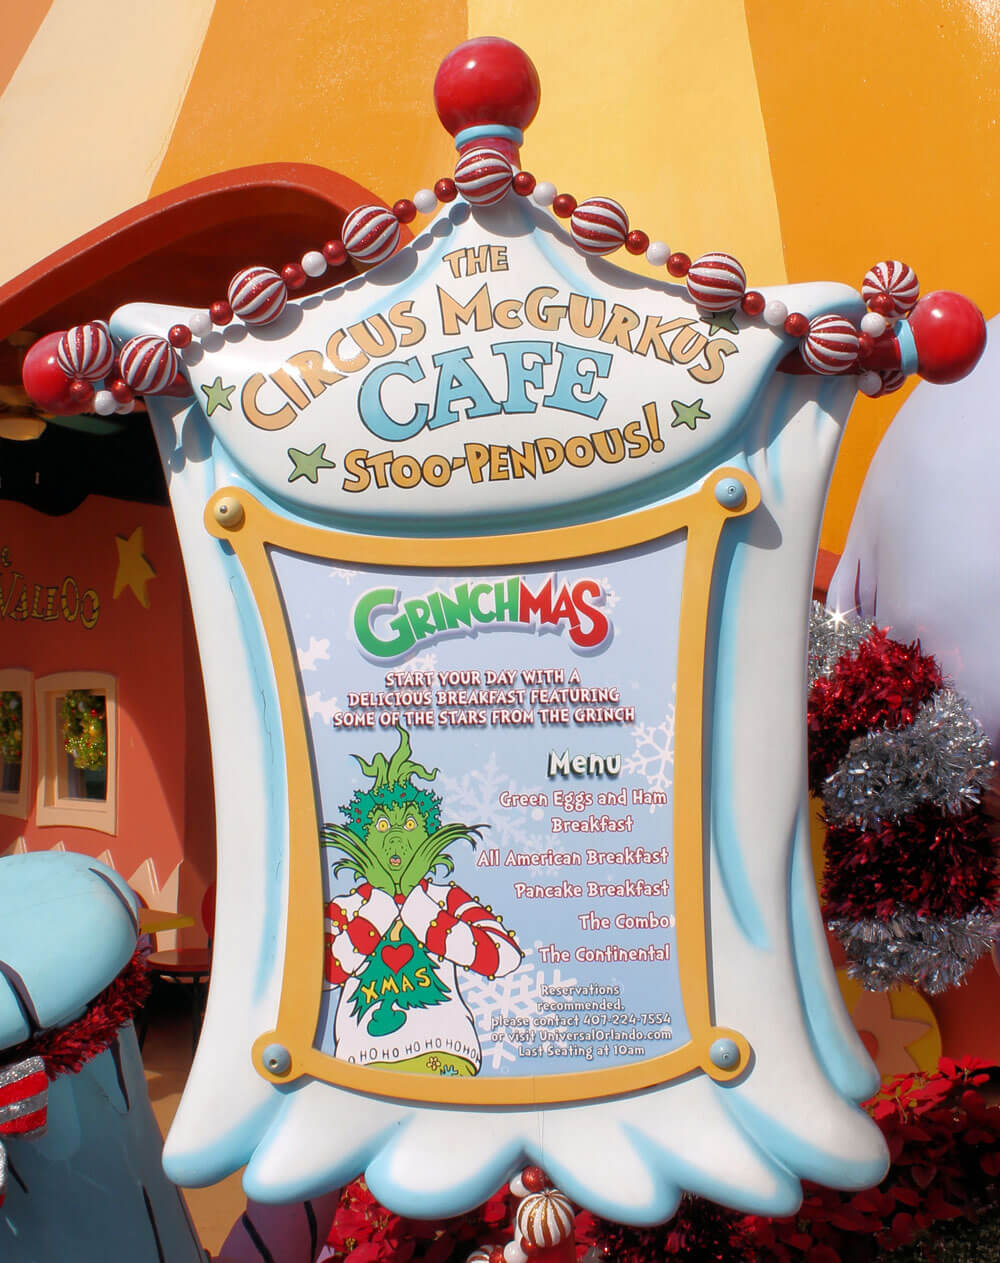 The Grinch and Friends Character Breakfast at Universal's Islands of Adventure